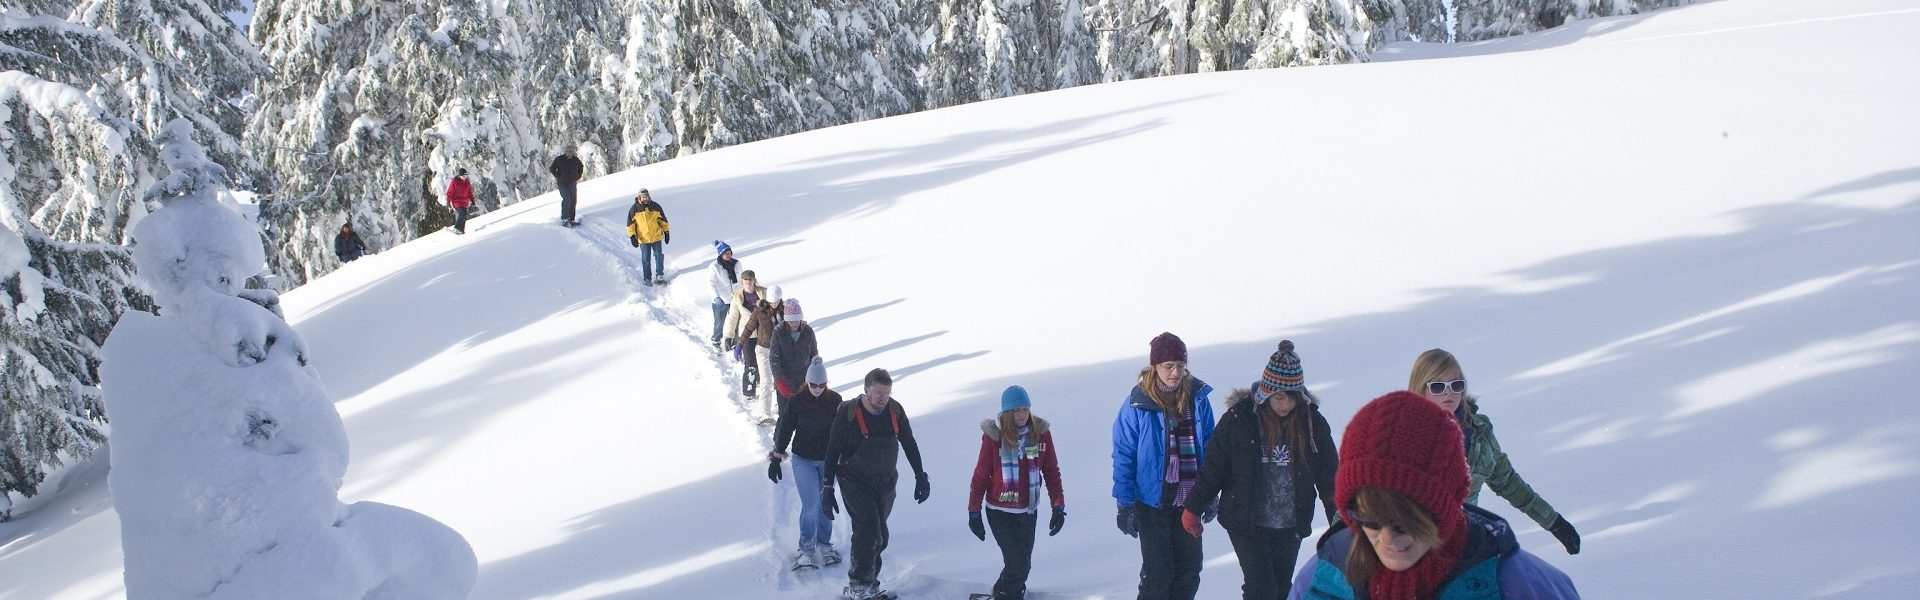 Group travel deals - snowshoe walk